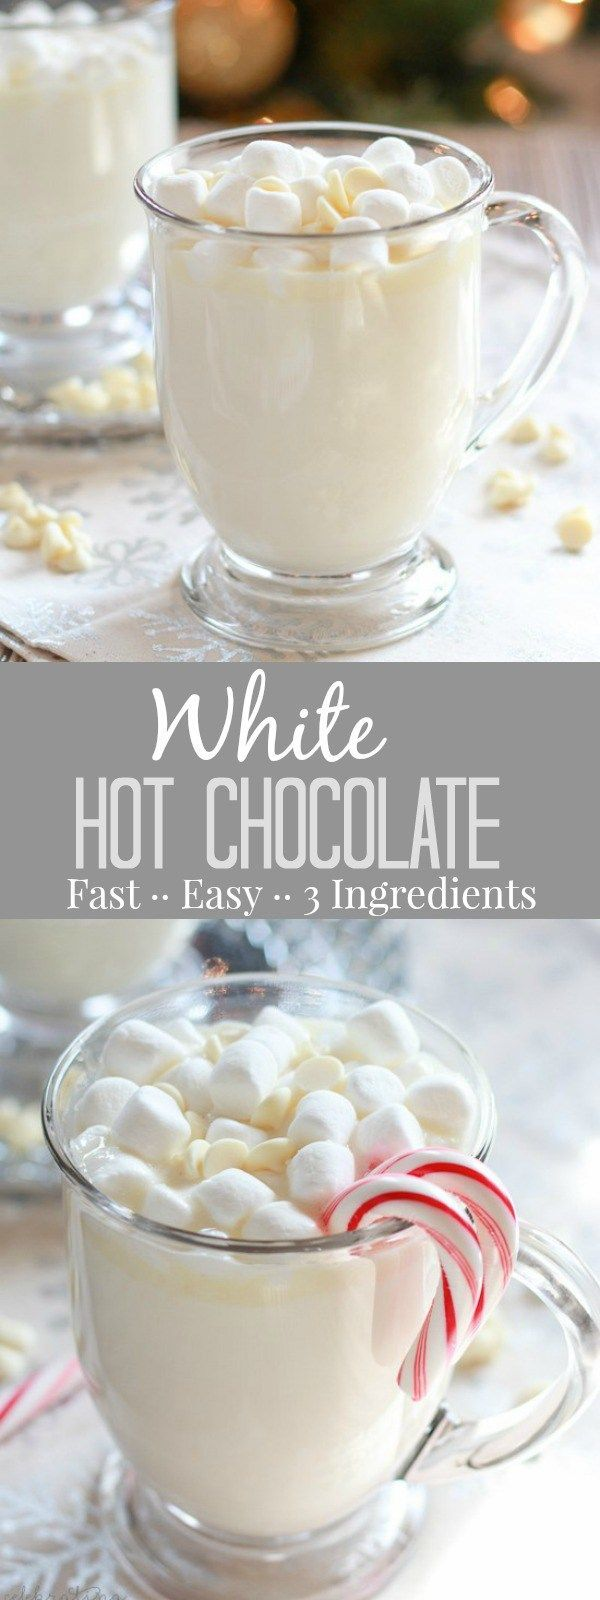 White Hot Chocolate - A simple recipe for sweet and creamy homemade white hot chocolate that is ready in minutes! (easy alcoholic drinks for a party)